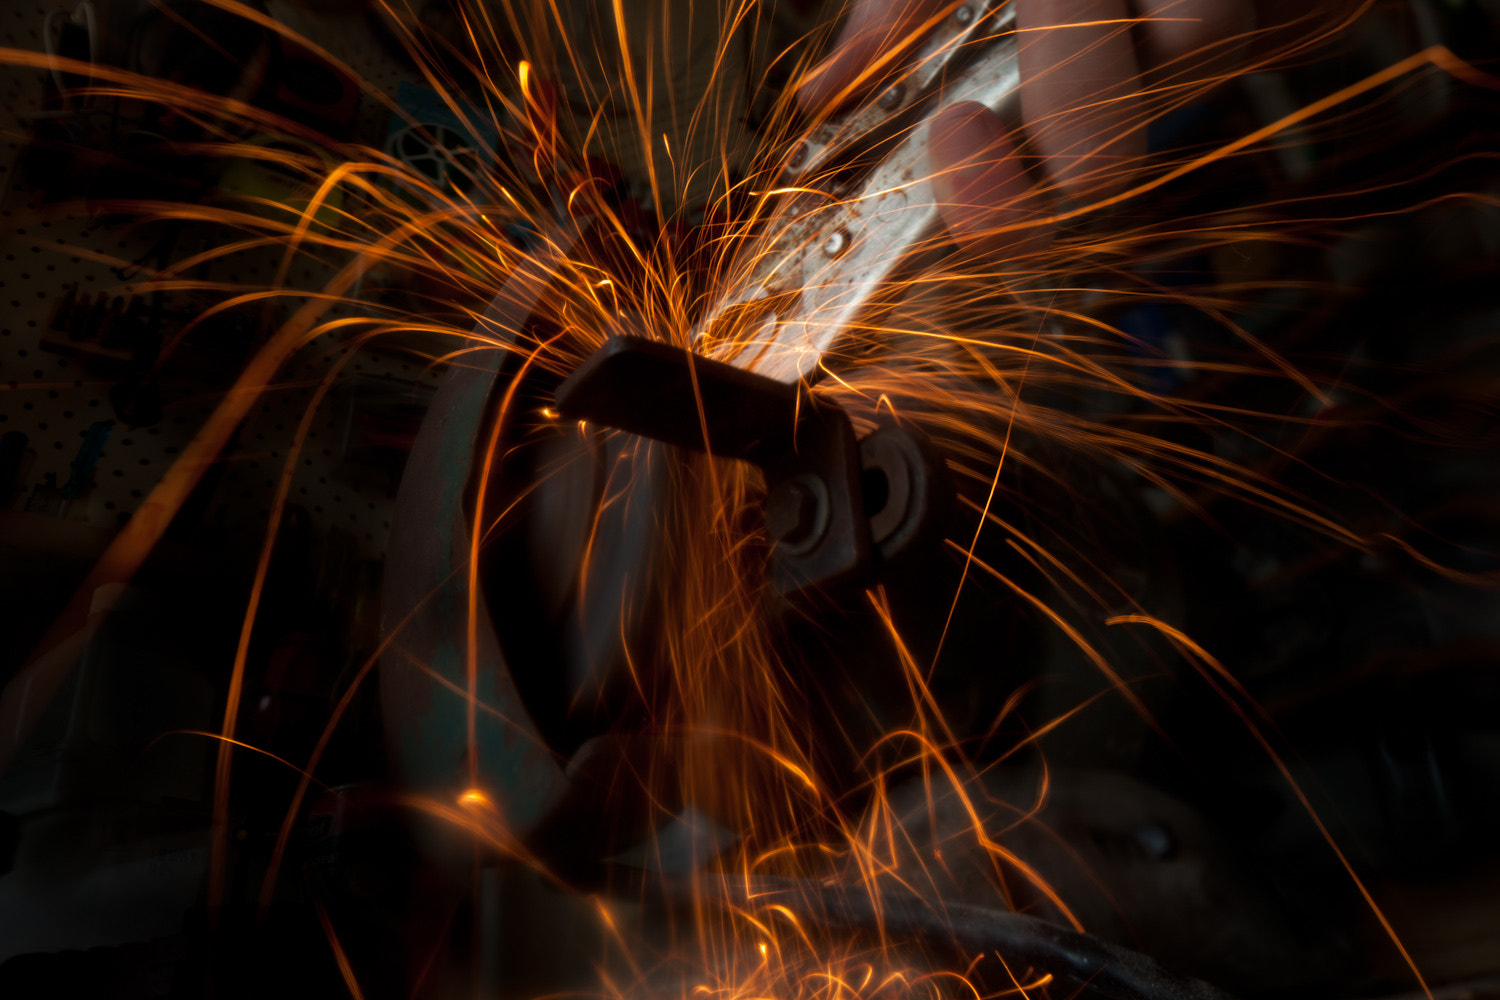 Photograph Sparks by Ryan Smale on 500px